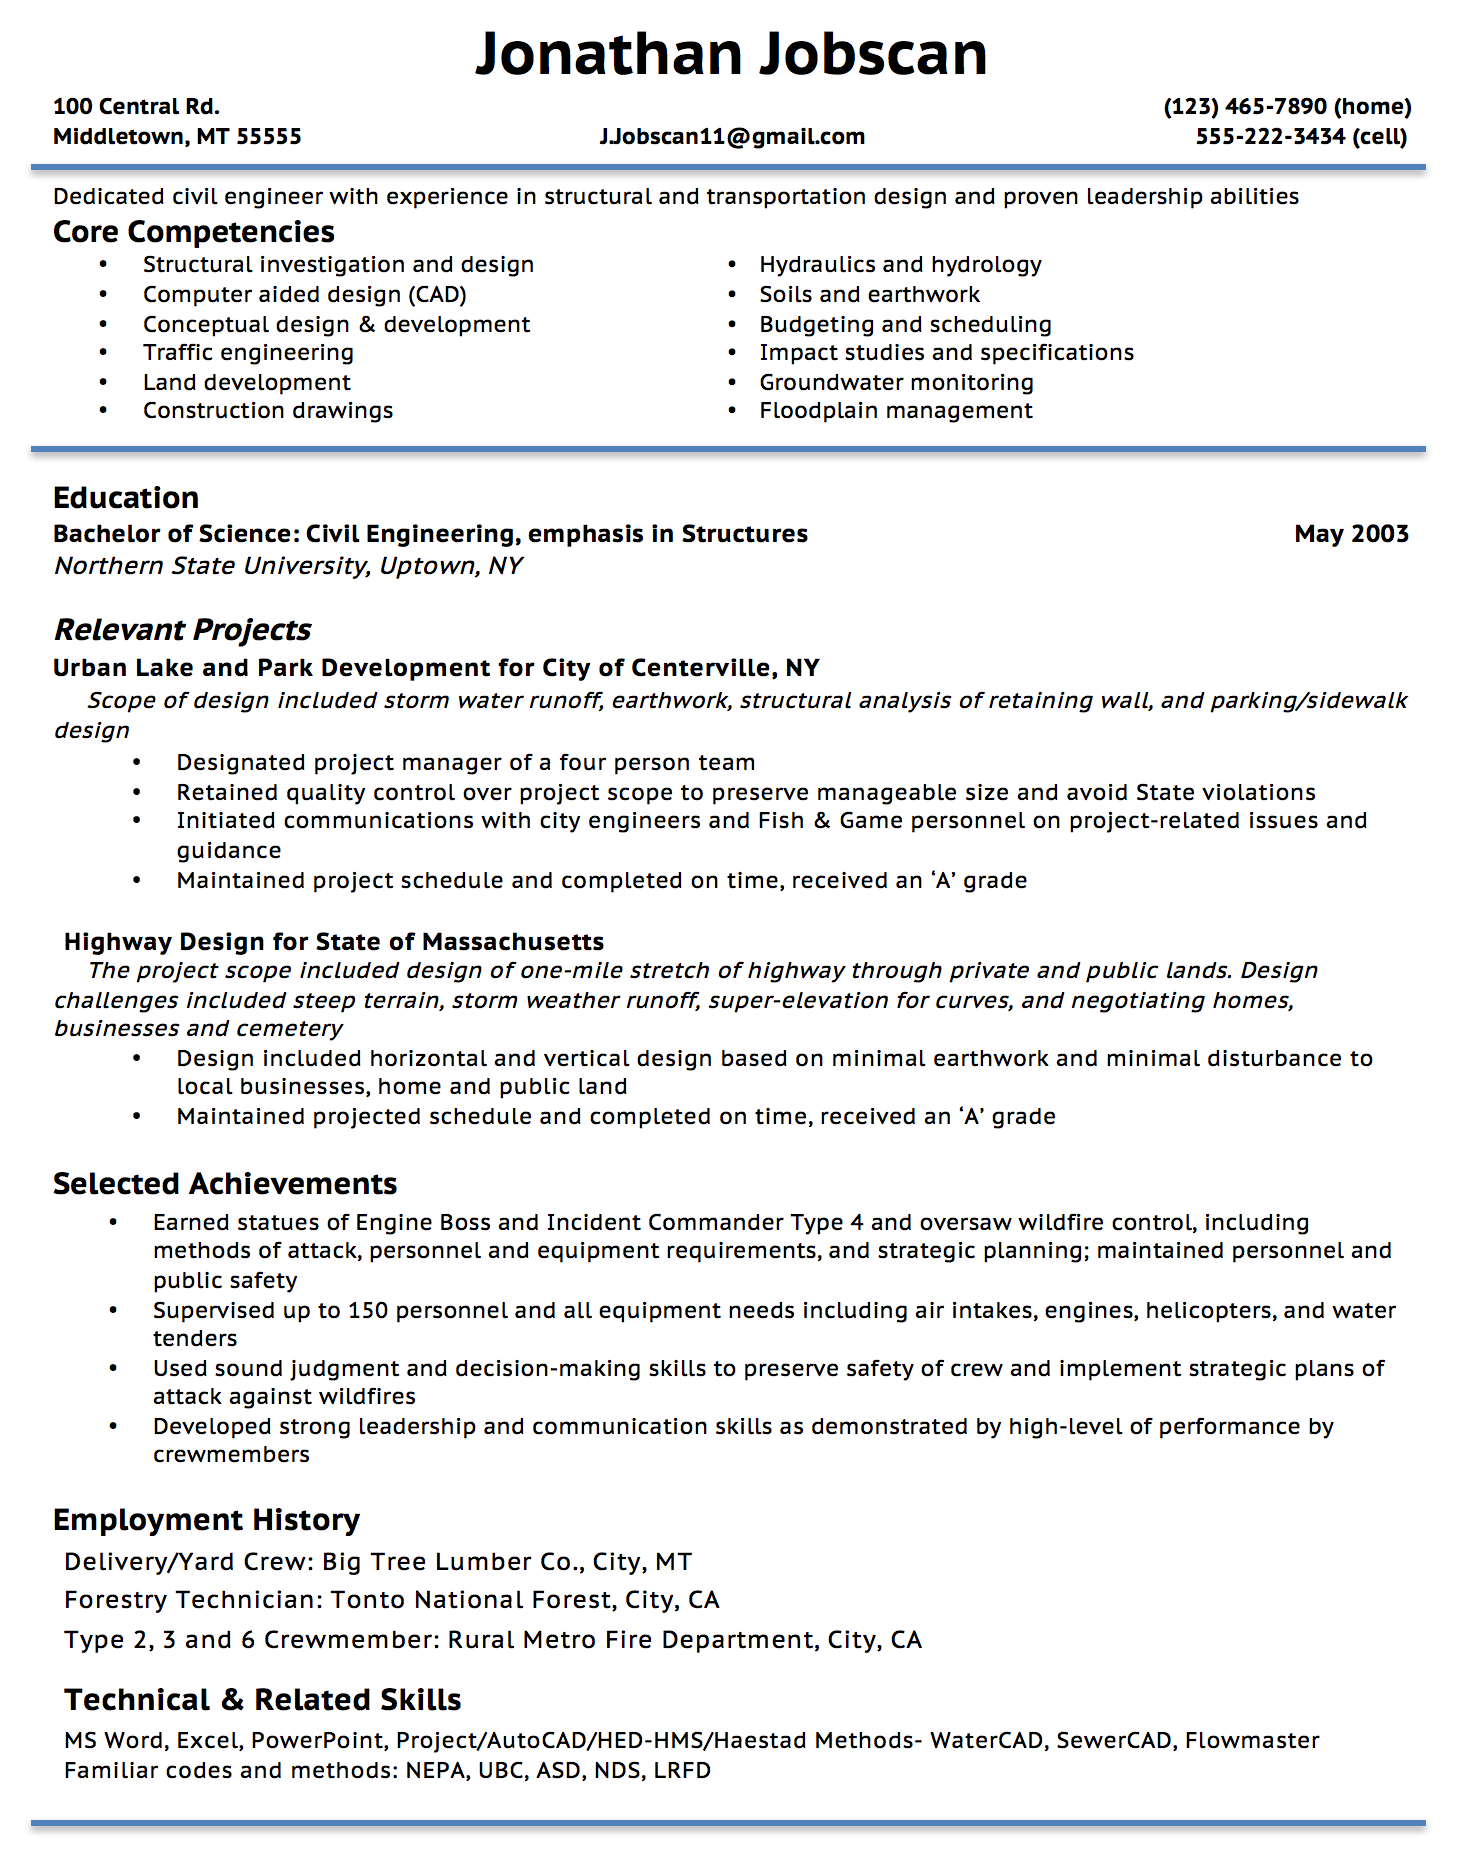 Opposenewapstandardsus  Marvellous Resume Writing Guide  Jobscan With Interesting Example Of A Functional Resume Format With Breathtaking Resume No Nos Also List Of Customer Service Skills For Resume In Addition Resume Examples For Customer Service Position And Doc Resume Template As Well As Download Word Resume Template Additionally What To Add To A Resume From Jobscanco With Opposenewapstandardsus  Interesting Resume Writing Guide  Jobscan With Breathtaking Example Of A Functional Resume Format And Marvellous Resume No Nos Also List Of Customer Service Skills For Resume In Addition Resume Examples For Customer Service Position From Jobscanco